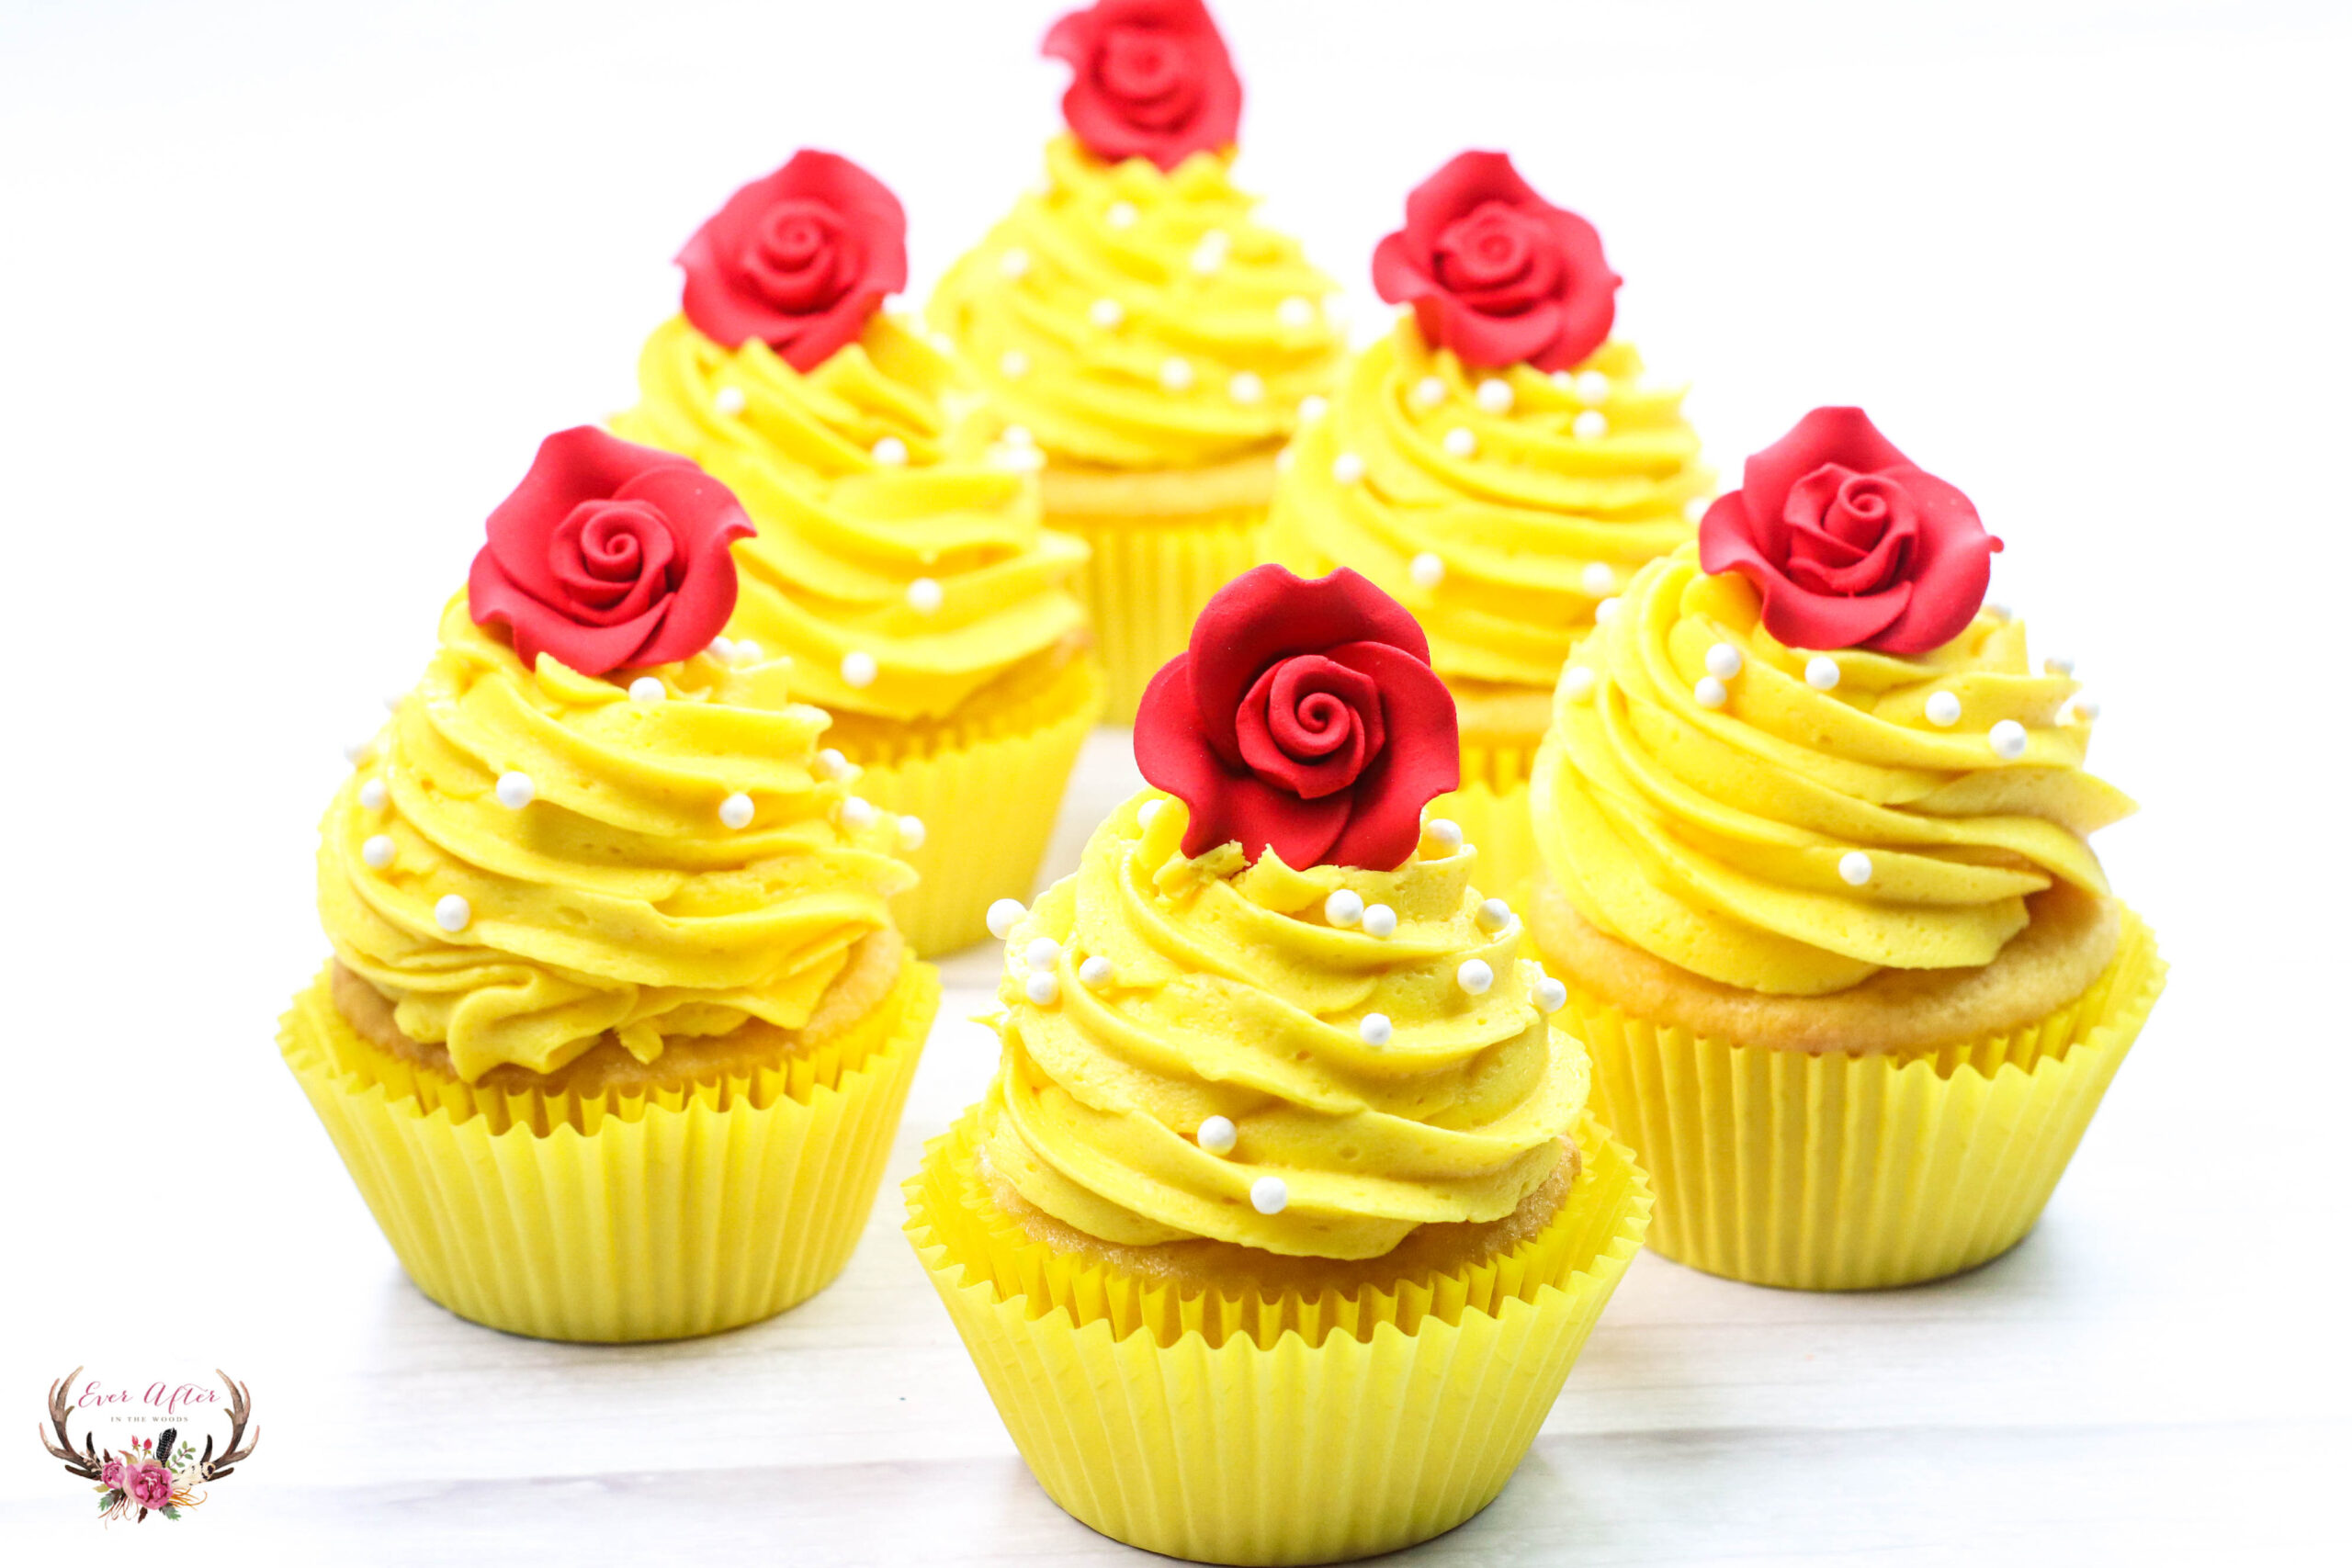 Beauty and the Beast Cupcakes